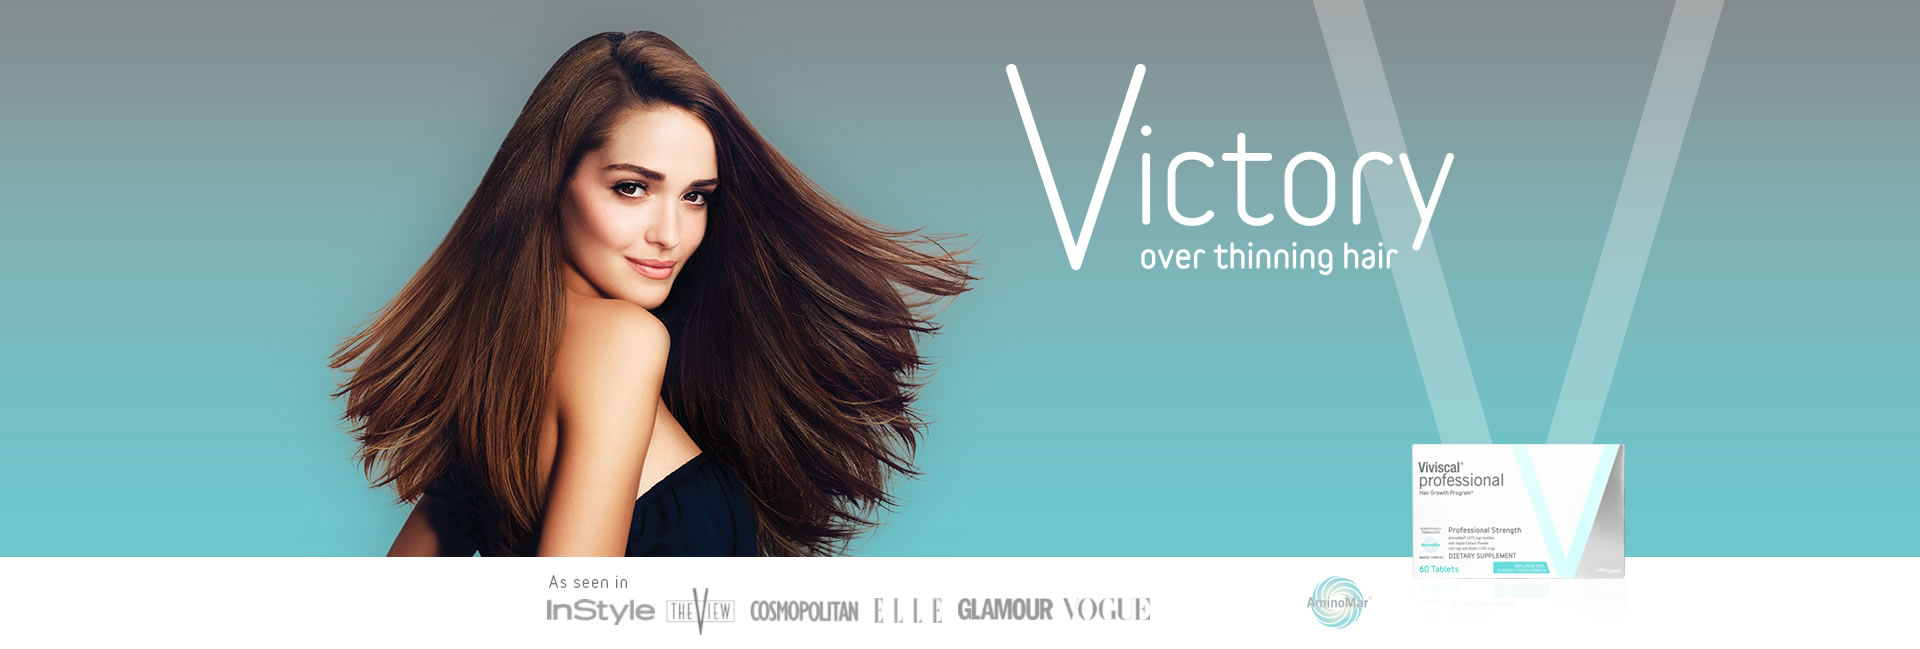 Viviscal Professional for Thinning Hair